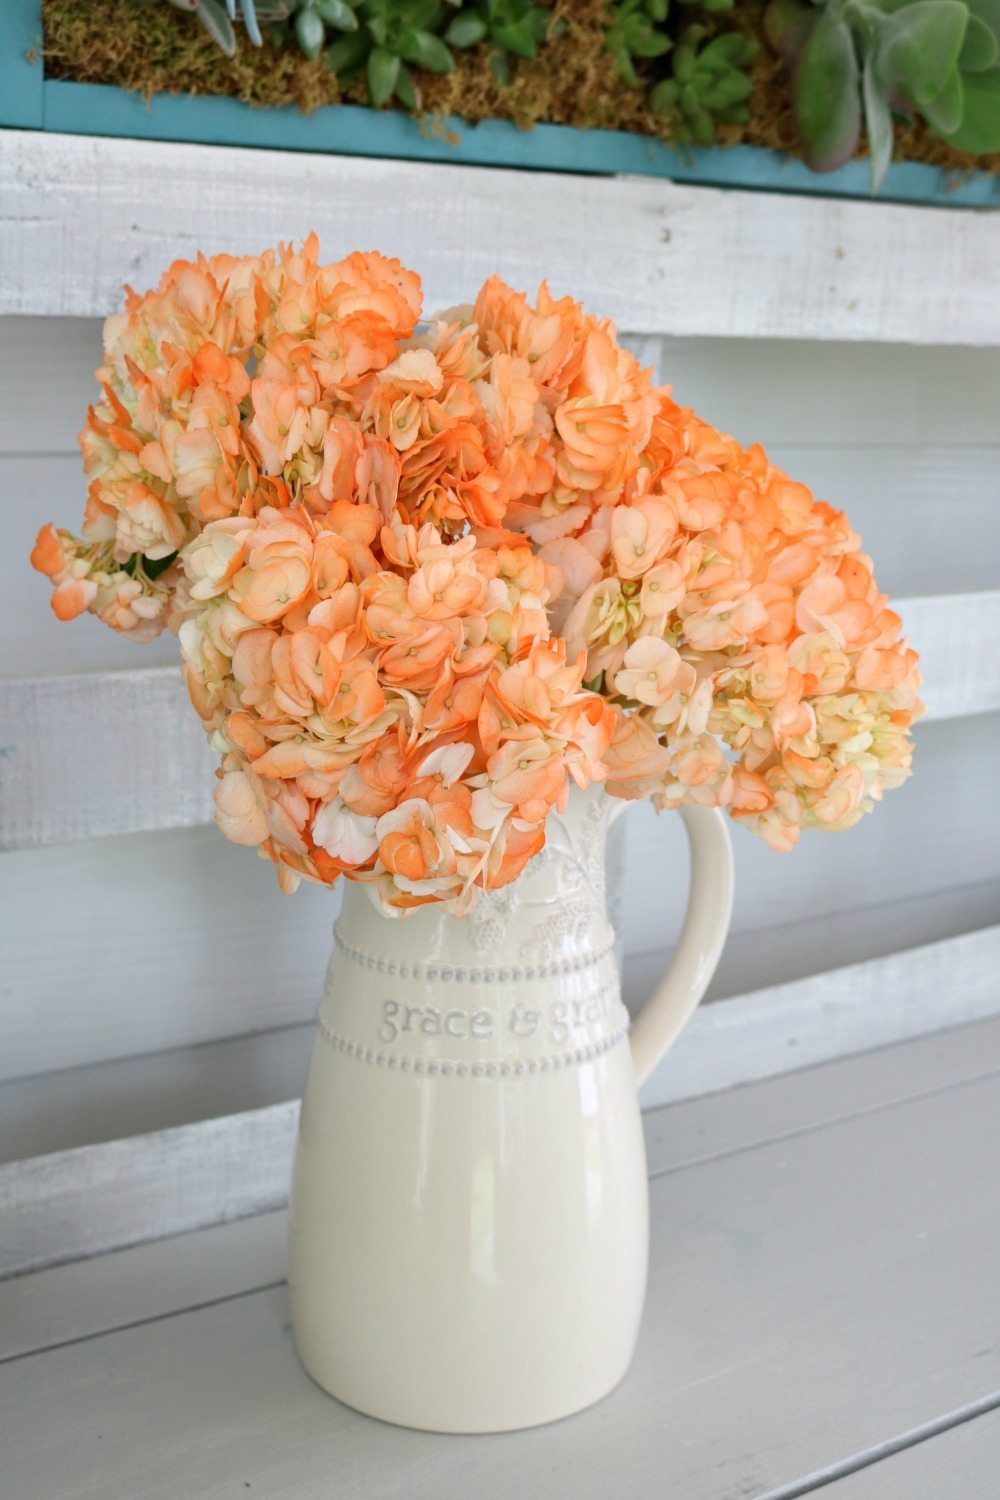 I've never seen Orange hydrangeas